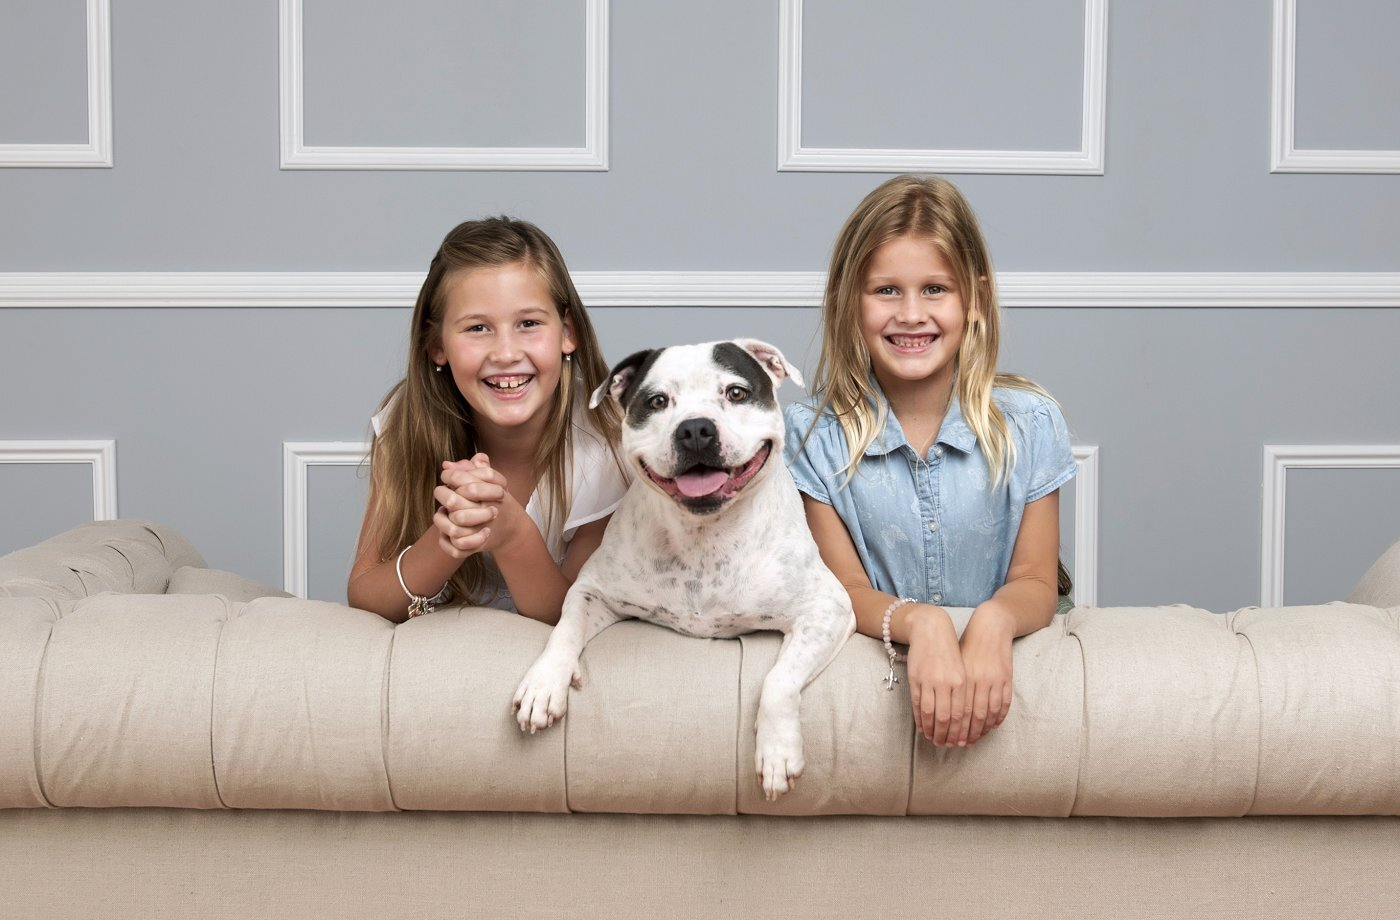 """Sarah Allen - """"The photographs that Kate took are stunning. She captured our girls perfectly, their personalities shining in each frame. Our crazy pooch enjoyed it all so much too."""""""